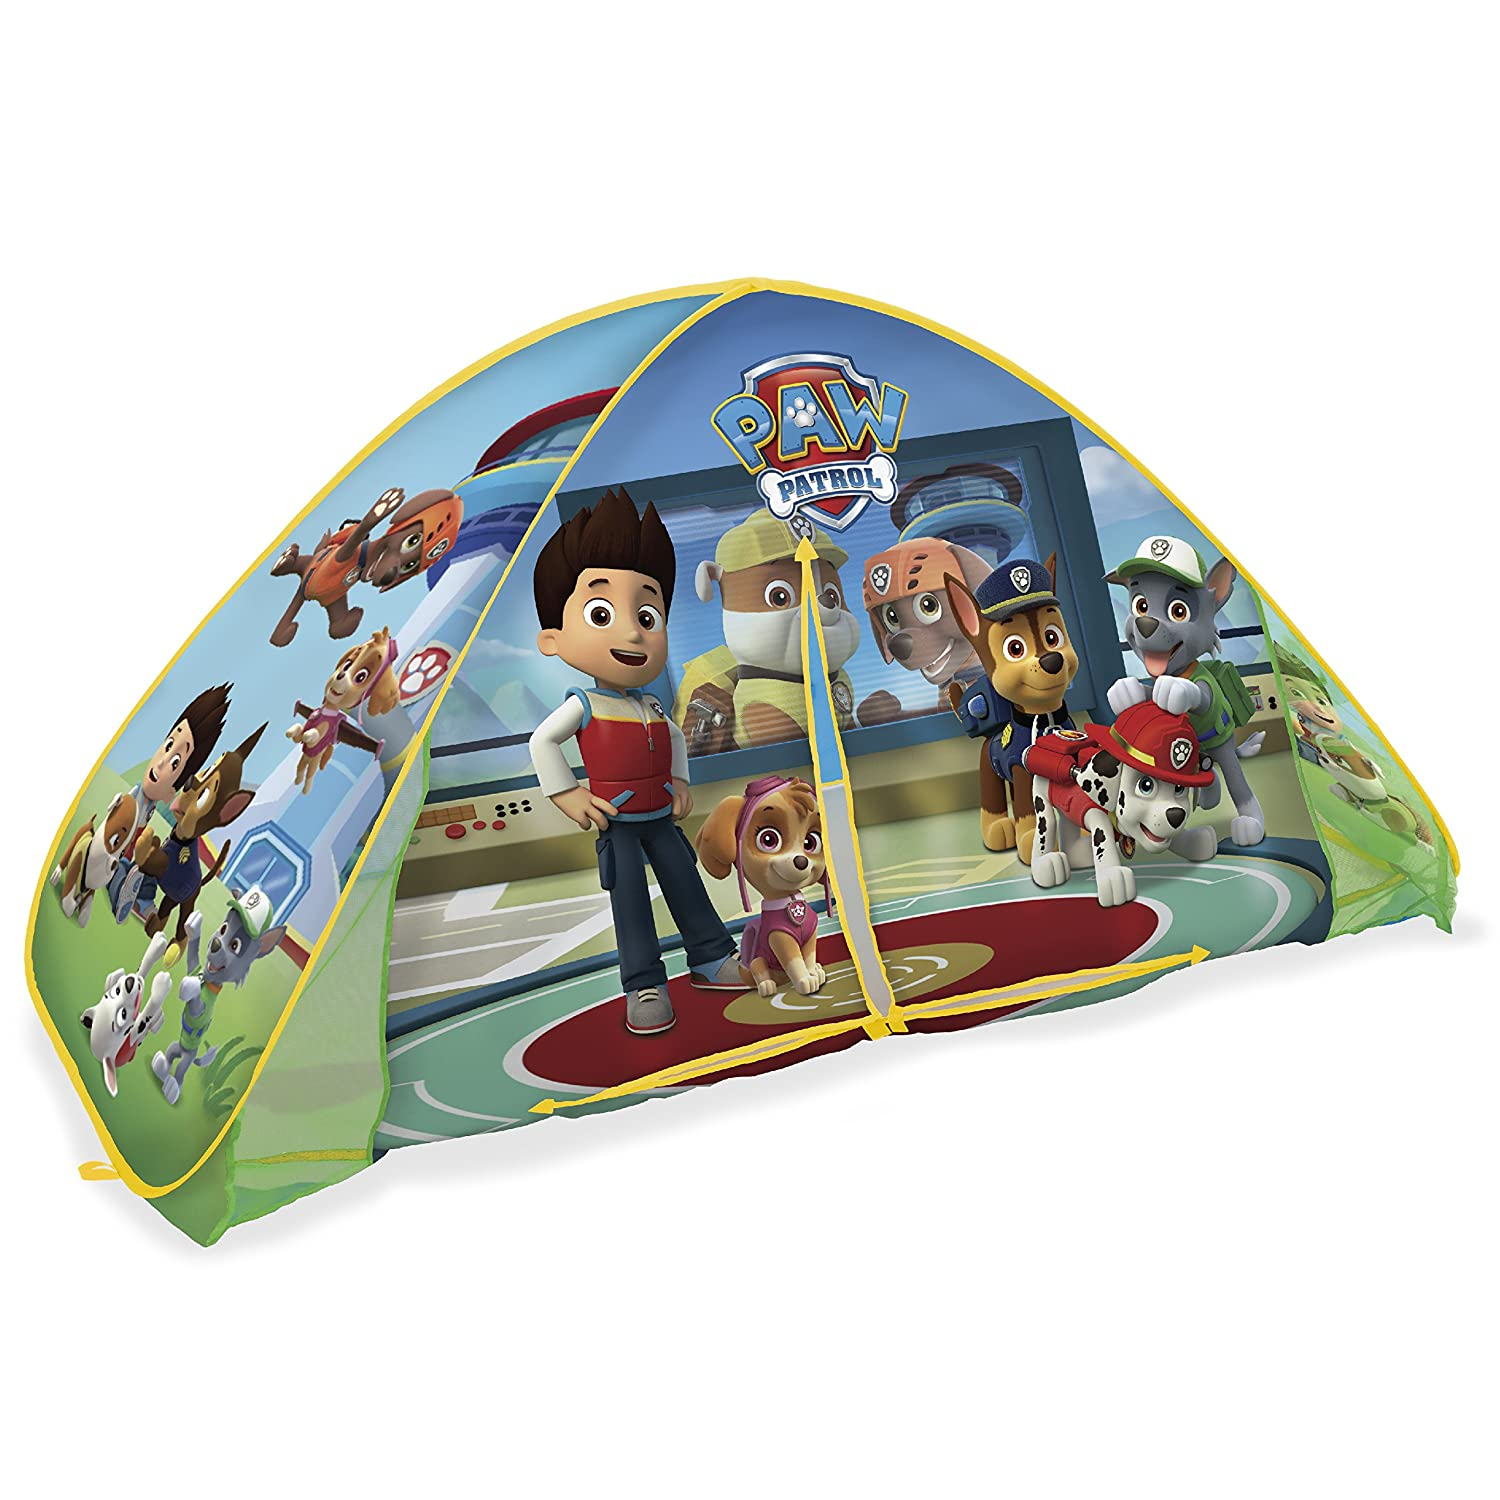 Playhut Paw Patrol 2-in-1 Bed Tent Playhouse